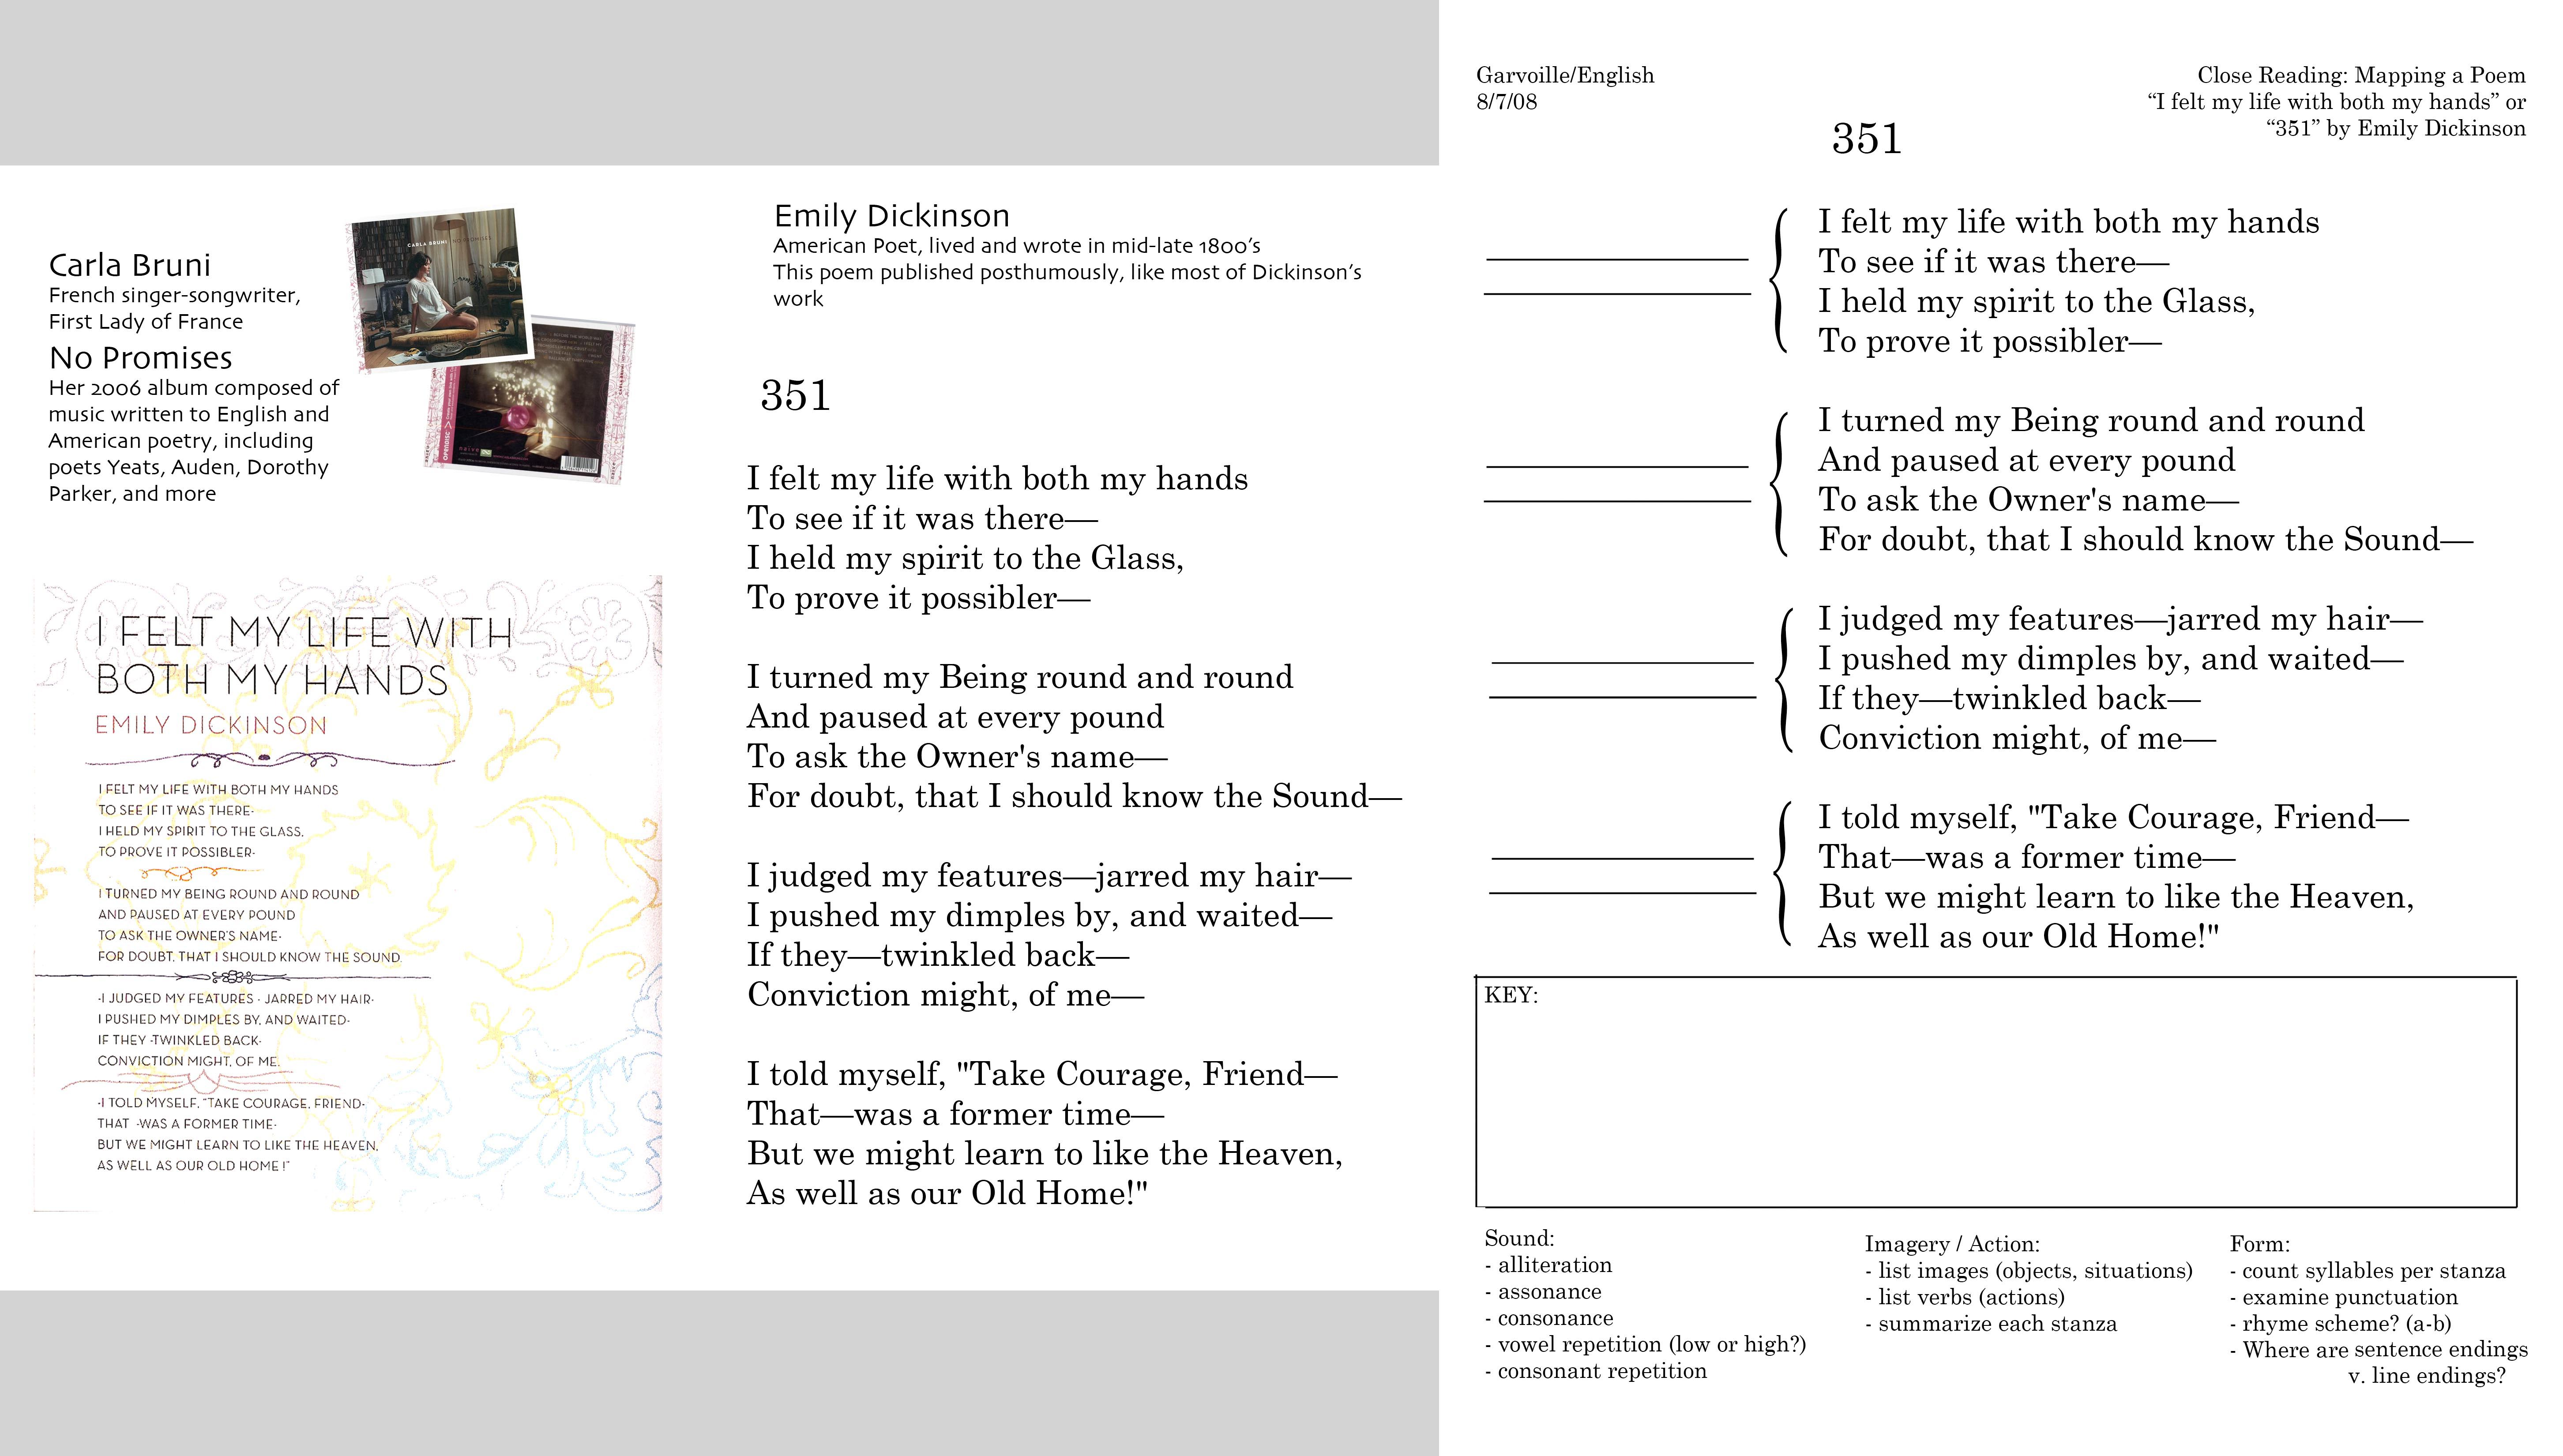 Worksheets Rhyme Scheme Worksheet poetry through song ms garvoilles english i